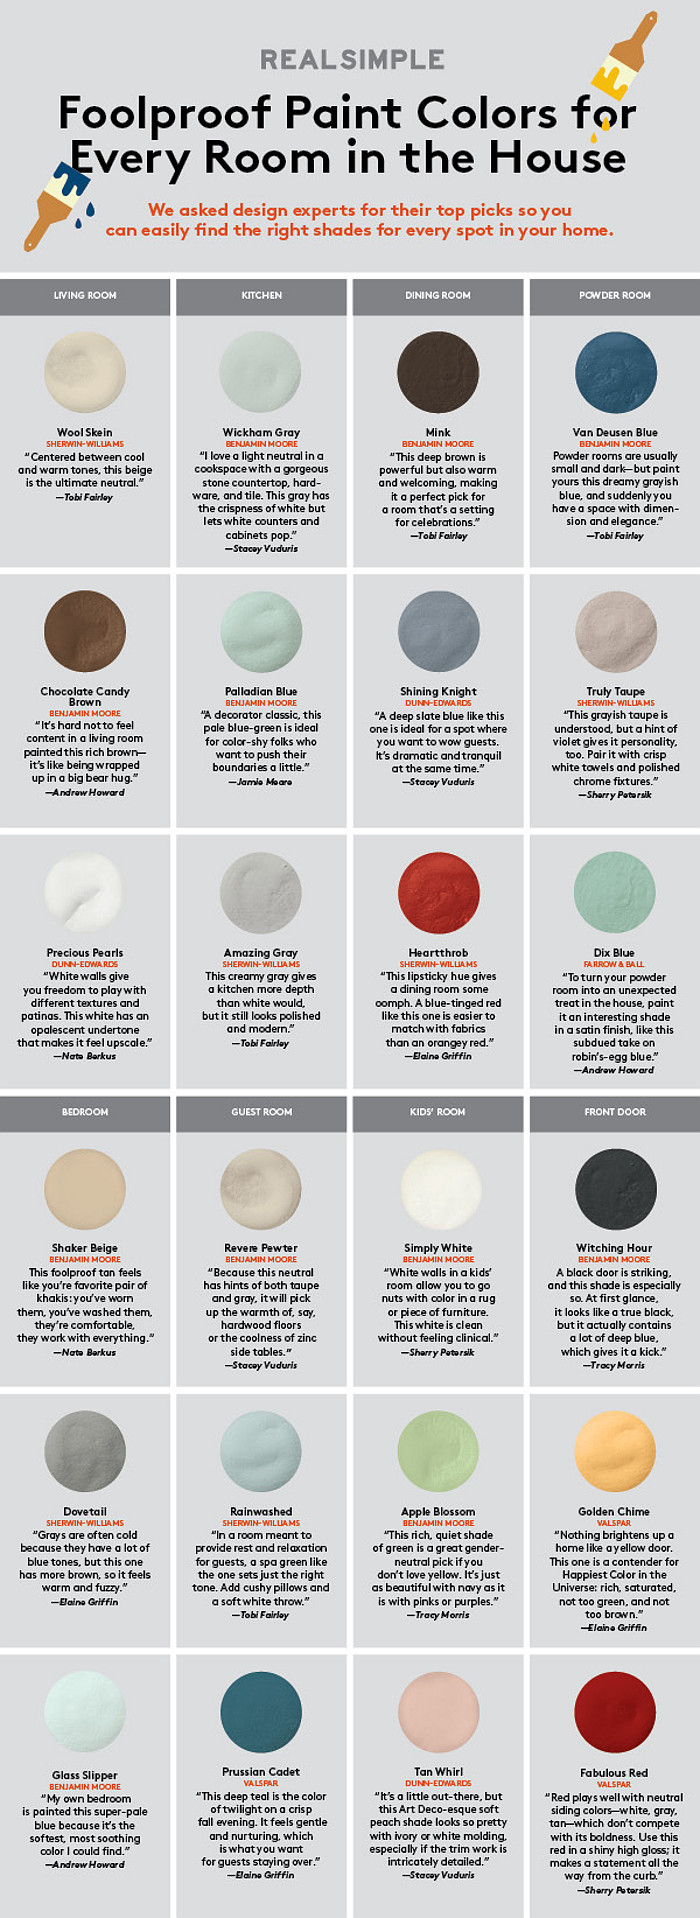 Foolproof paint color for every room in the house. Wool Skein by Sherwin-Williams, Wickham Gray by Benjamin Moore, Mink by Benjamin Moore, Chocolate Candy Brown by Benjamin Moore, Palladian Blue by Benjamin Moore, Shining Knight by Dunn-Edwards, Truly Taupe Sherwin Williams, Precious Pearl by Dunn Edwards, Amazing Gray by Sherwin-Williams, Heartthrob by Sherwin-Williams, Shaker Beige by Benjamin Moore, Revere Pewter by Benjamin Moore, Simply White by Benjamin Moore, Dovetail by Sherwin-Williams, Rainwashed by Sherwin-Williams, Apple Blossom by Benjamin Moore, Glass Slipper by Benjamin Moore, Prussian Cadet by Valspar, Tan Whirl by Dunn-Edwards #FoolProof #PaintColor #WholeHouse